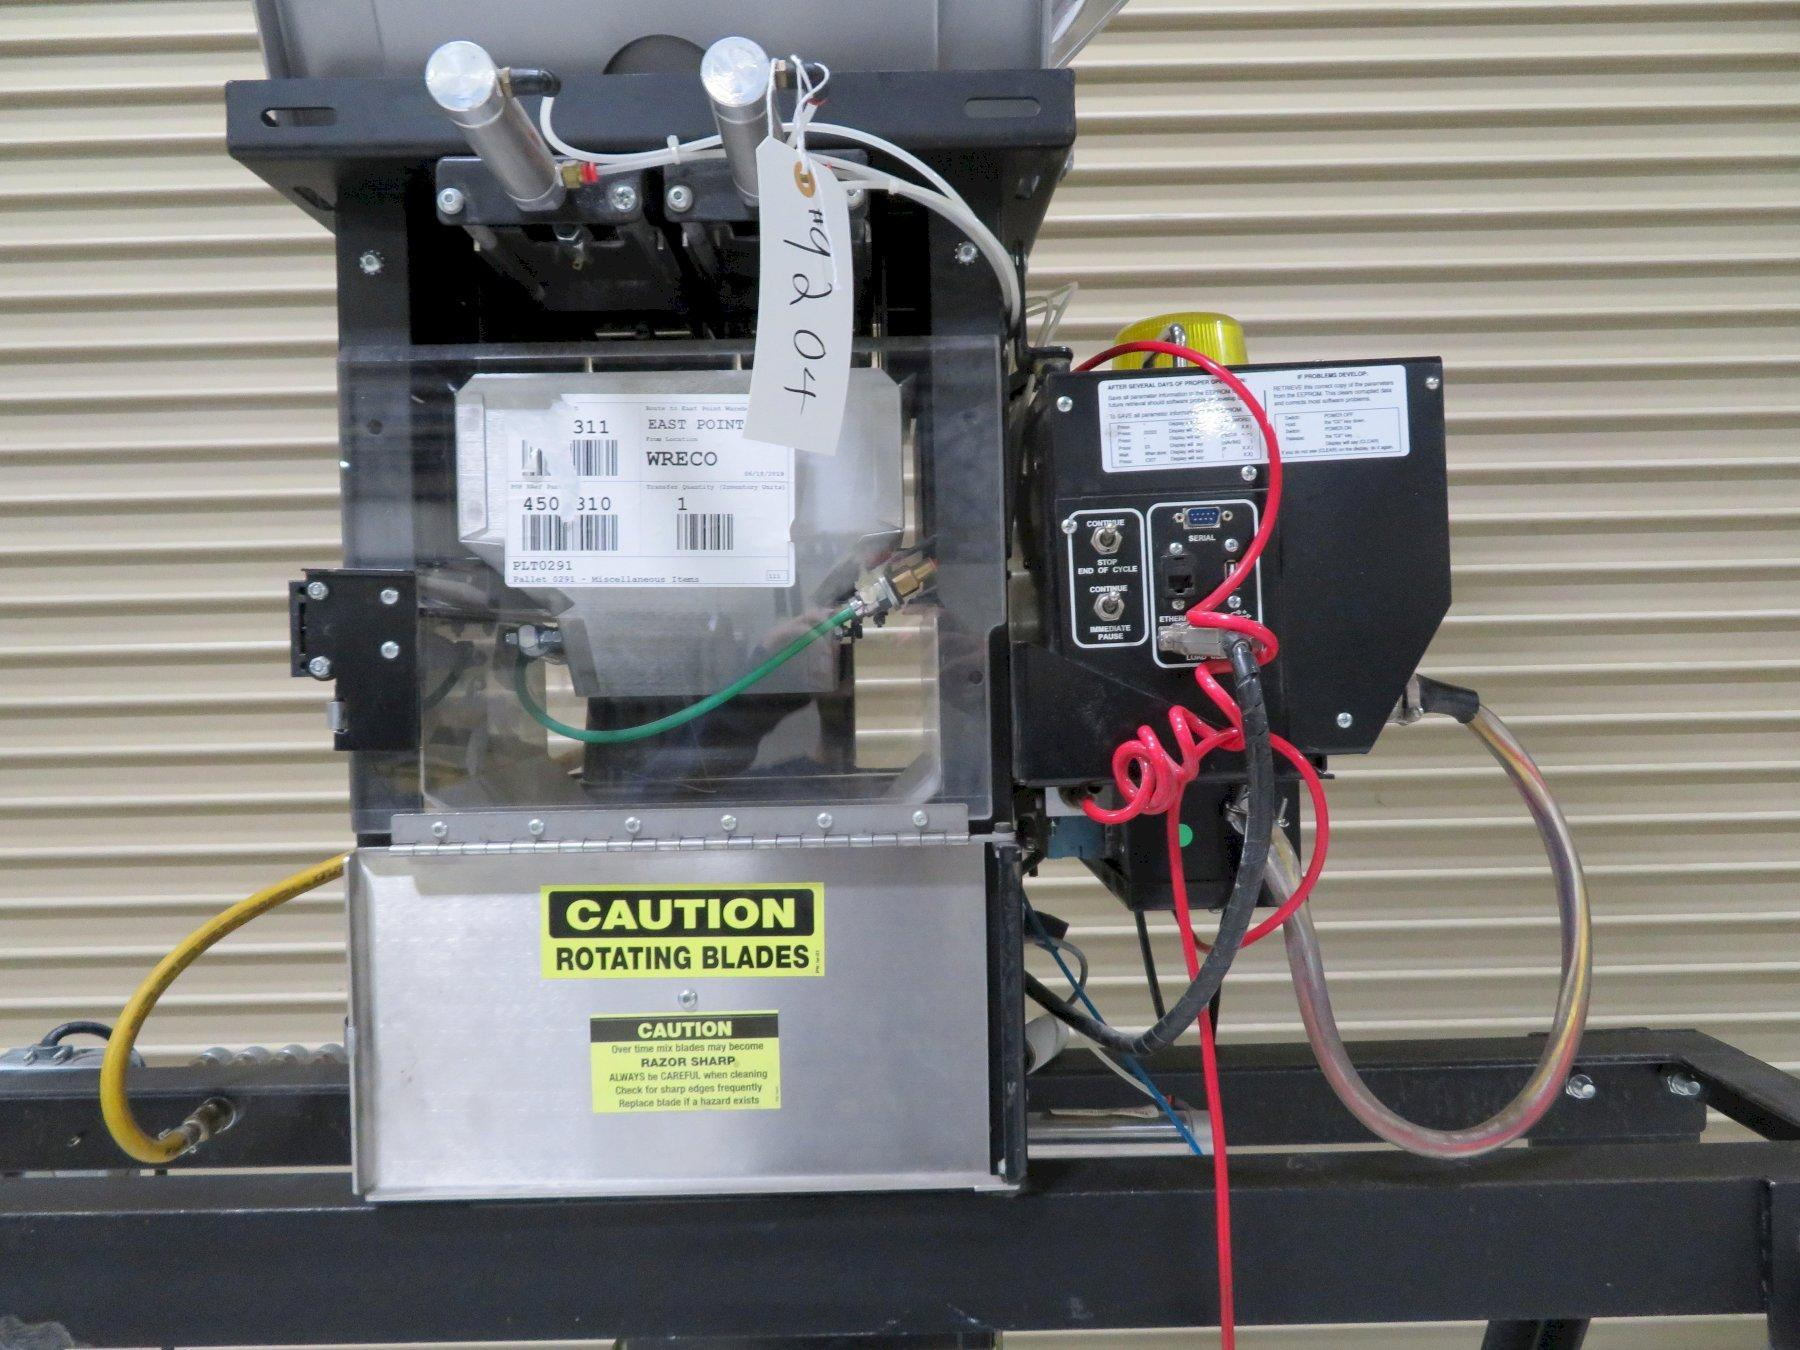 Maguire Used WSB-240 Four-Component Gravimetric Blender, Approx 750-1000 lbs/hr, Yr. 2010